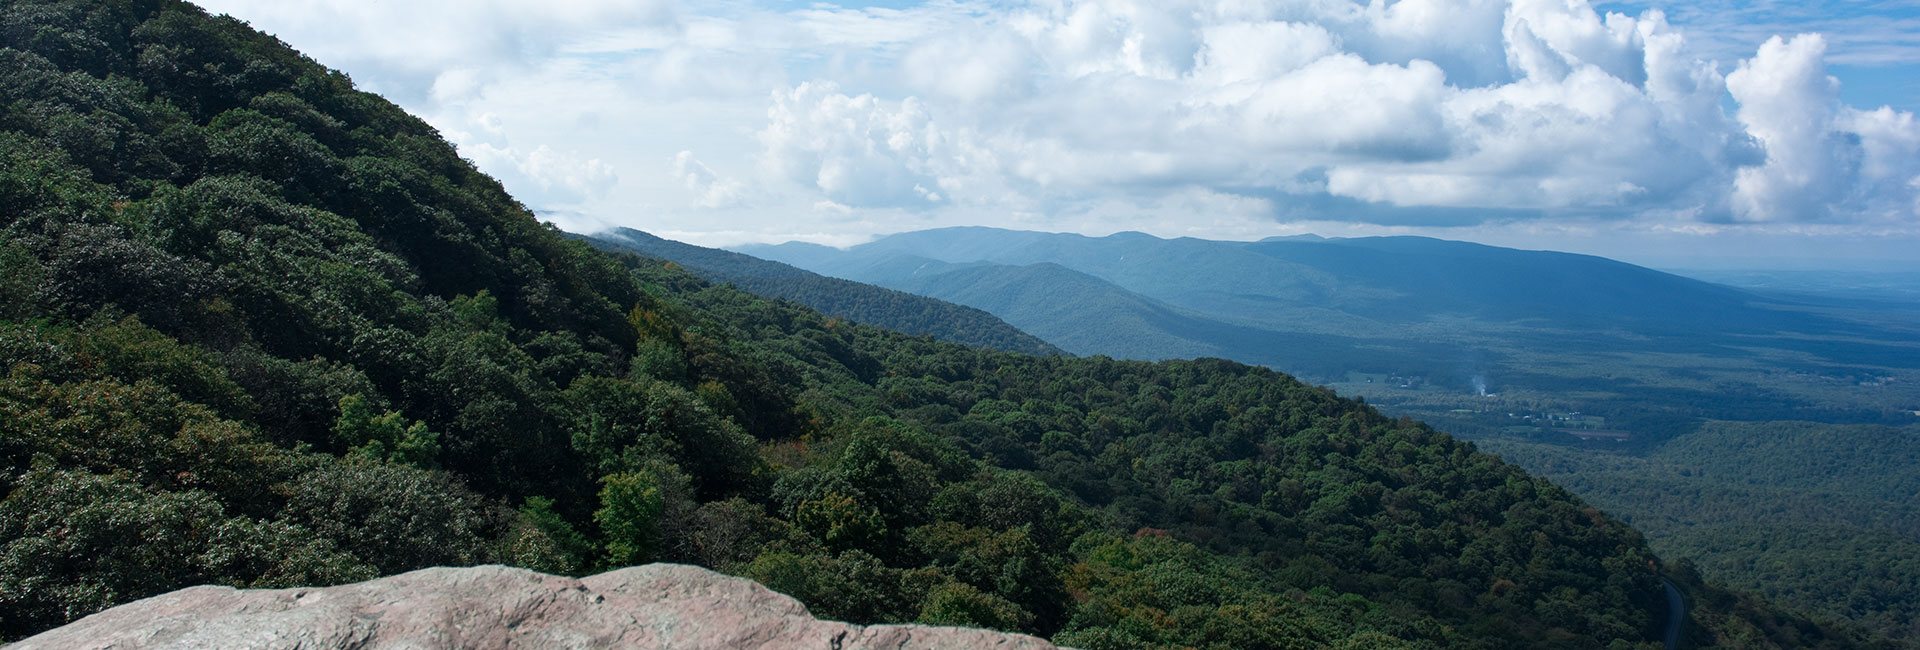 Humpback Rock on the Blue Ridge Parkway in Virginia